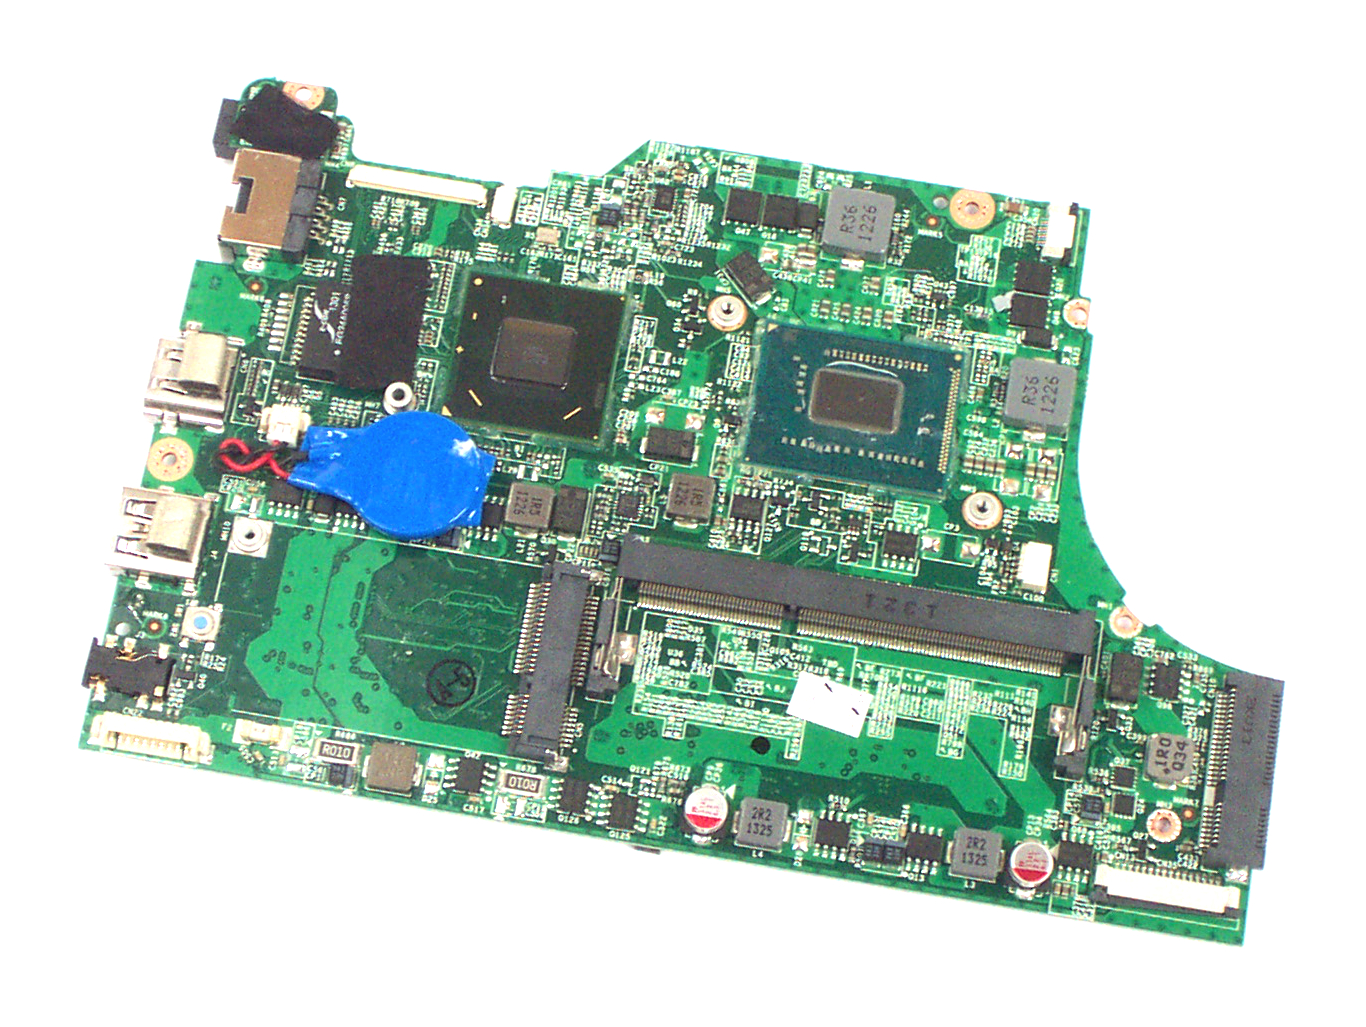 5000-0003-5403 Advent Tacto Motherboard with BGA Intel SR10A Processor